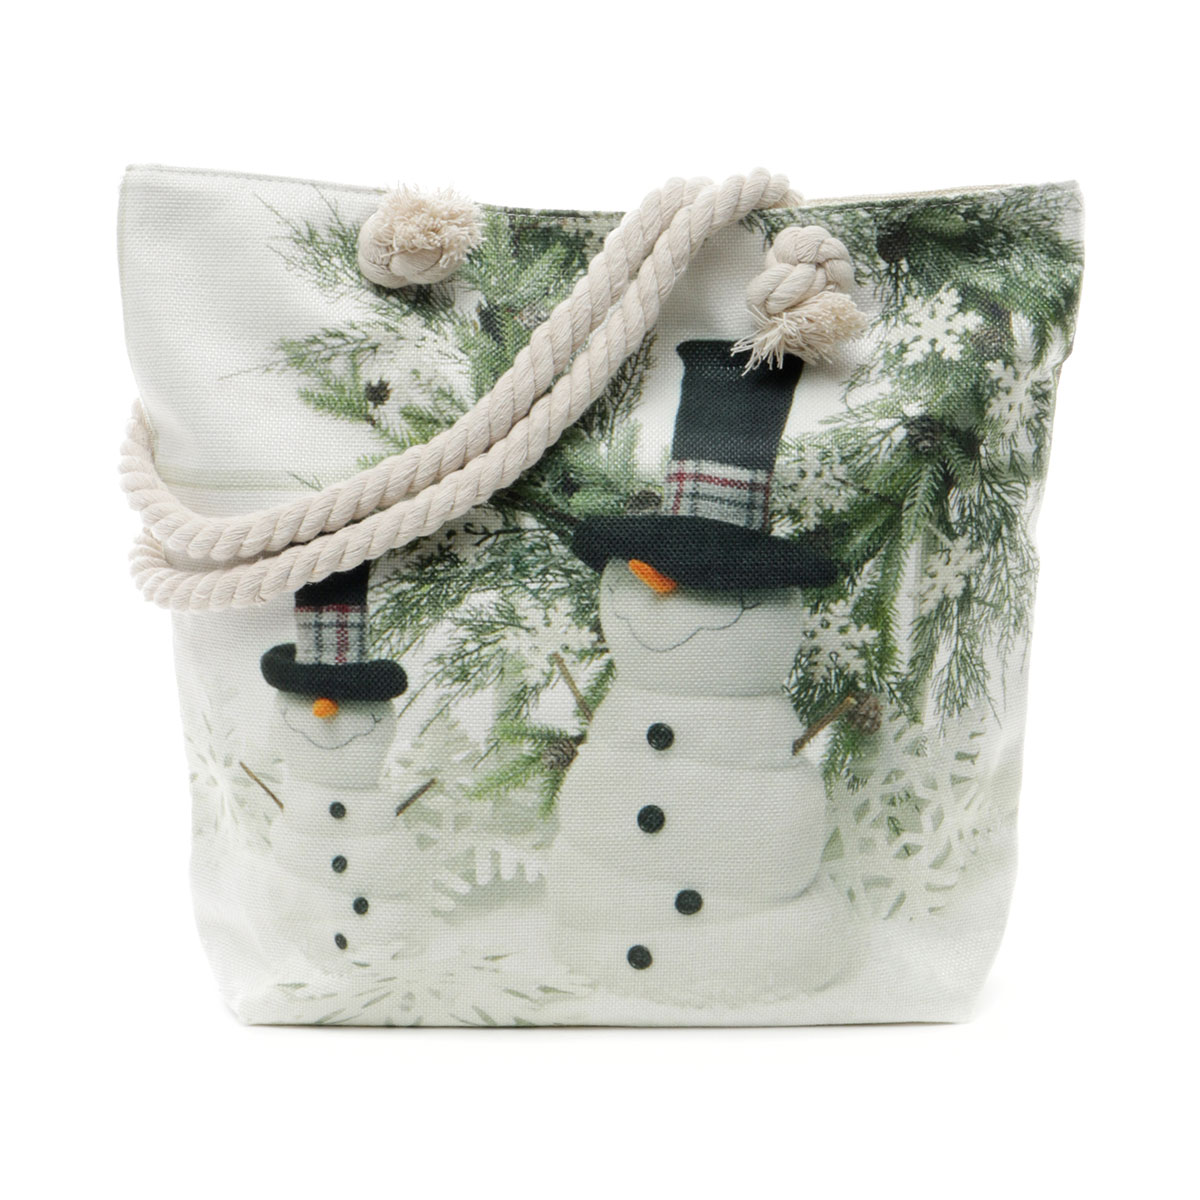 Snowmies Tapestry Bag with Adjustable Should Strap, Lining and Z